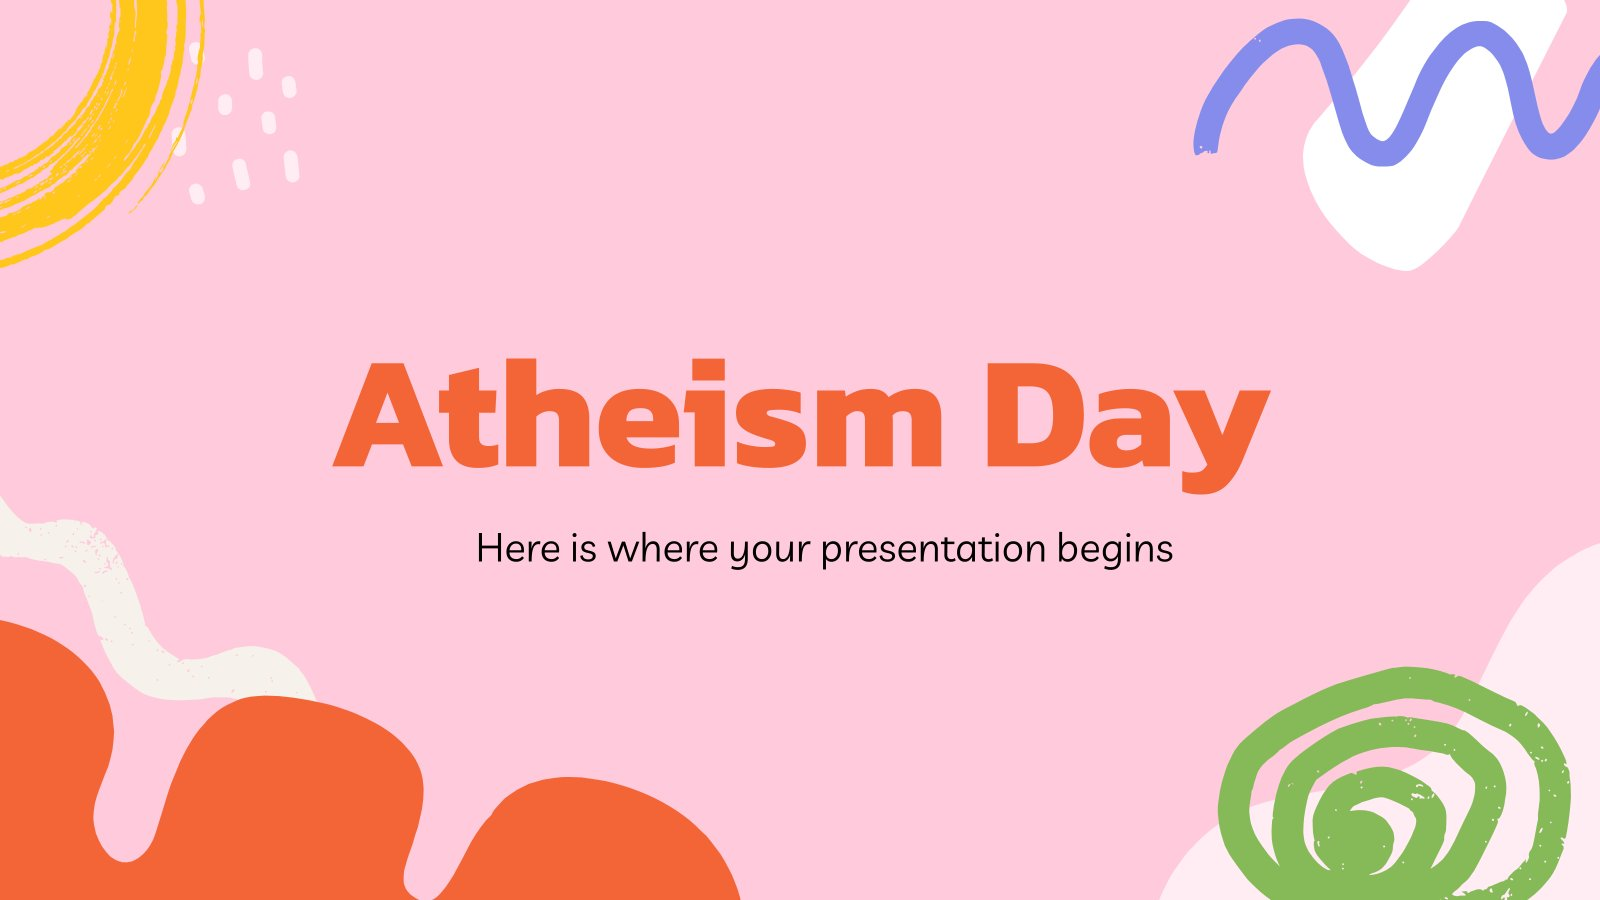 Atheism Day presentation template